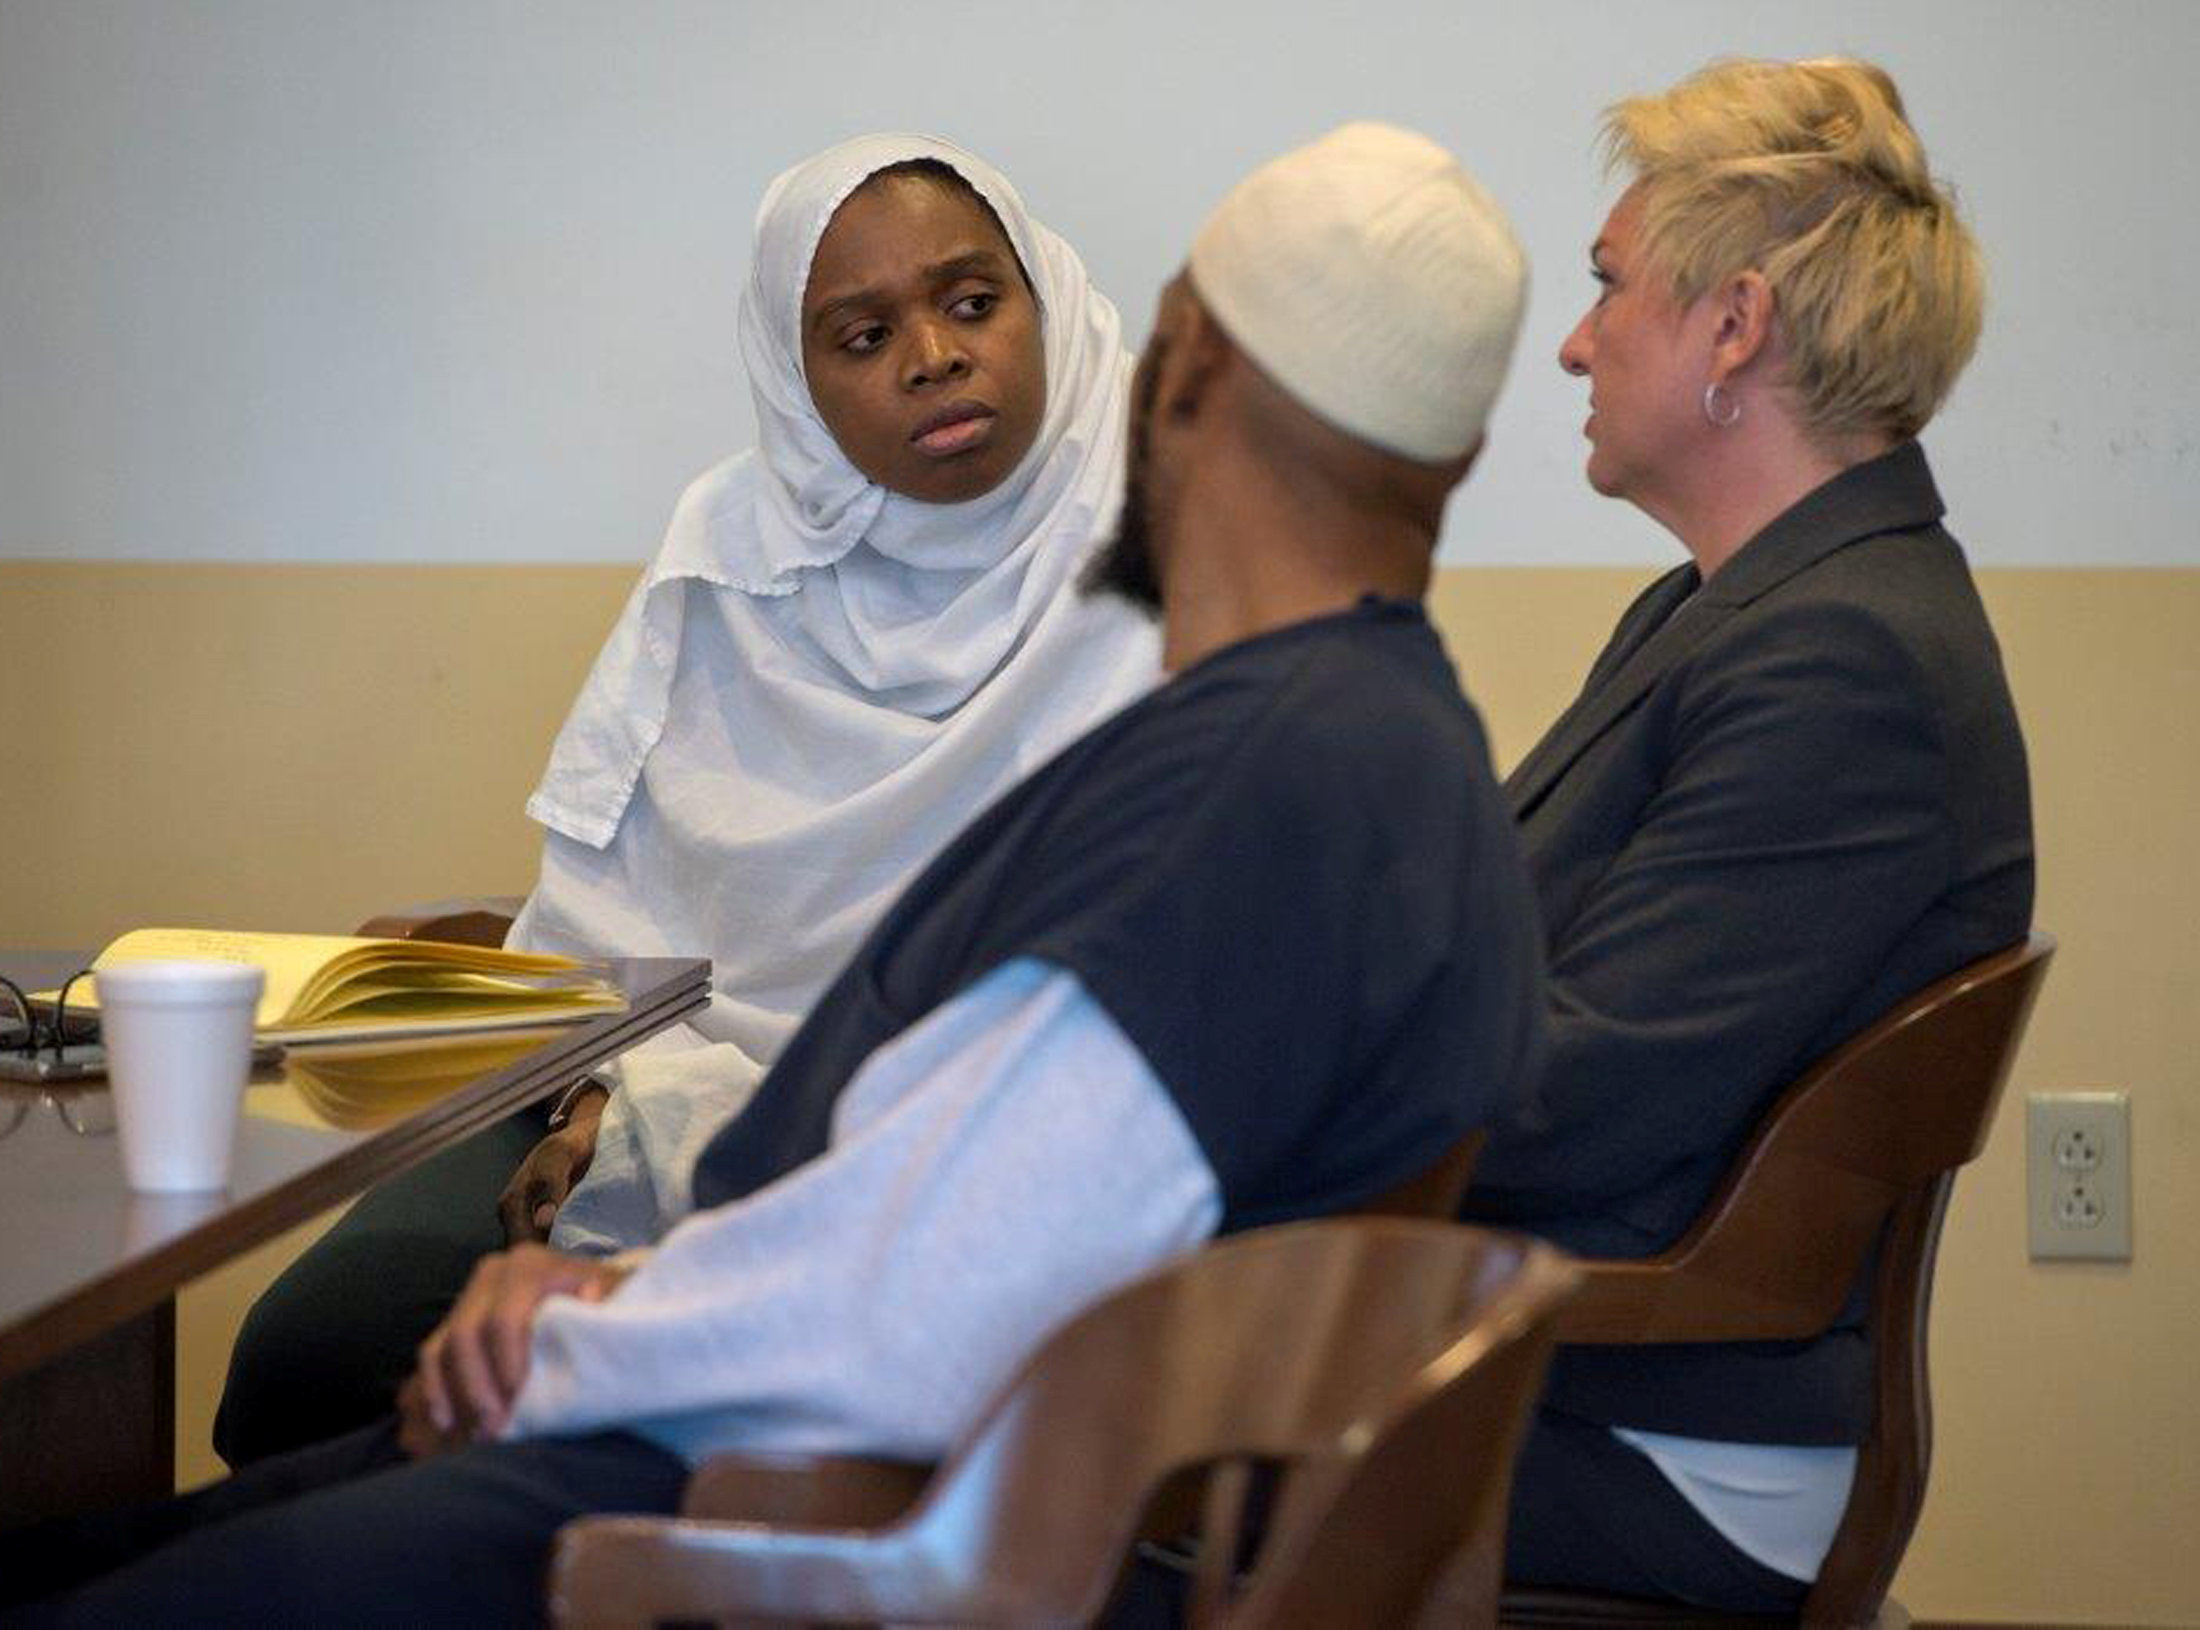 Jany Leveille (L to R) and Siraj Ibn Wahhaj talk to defense lawyer Kelly Golightley during a hearing in Taos District Court in Taos County